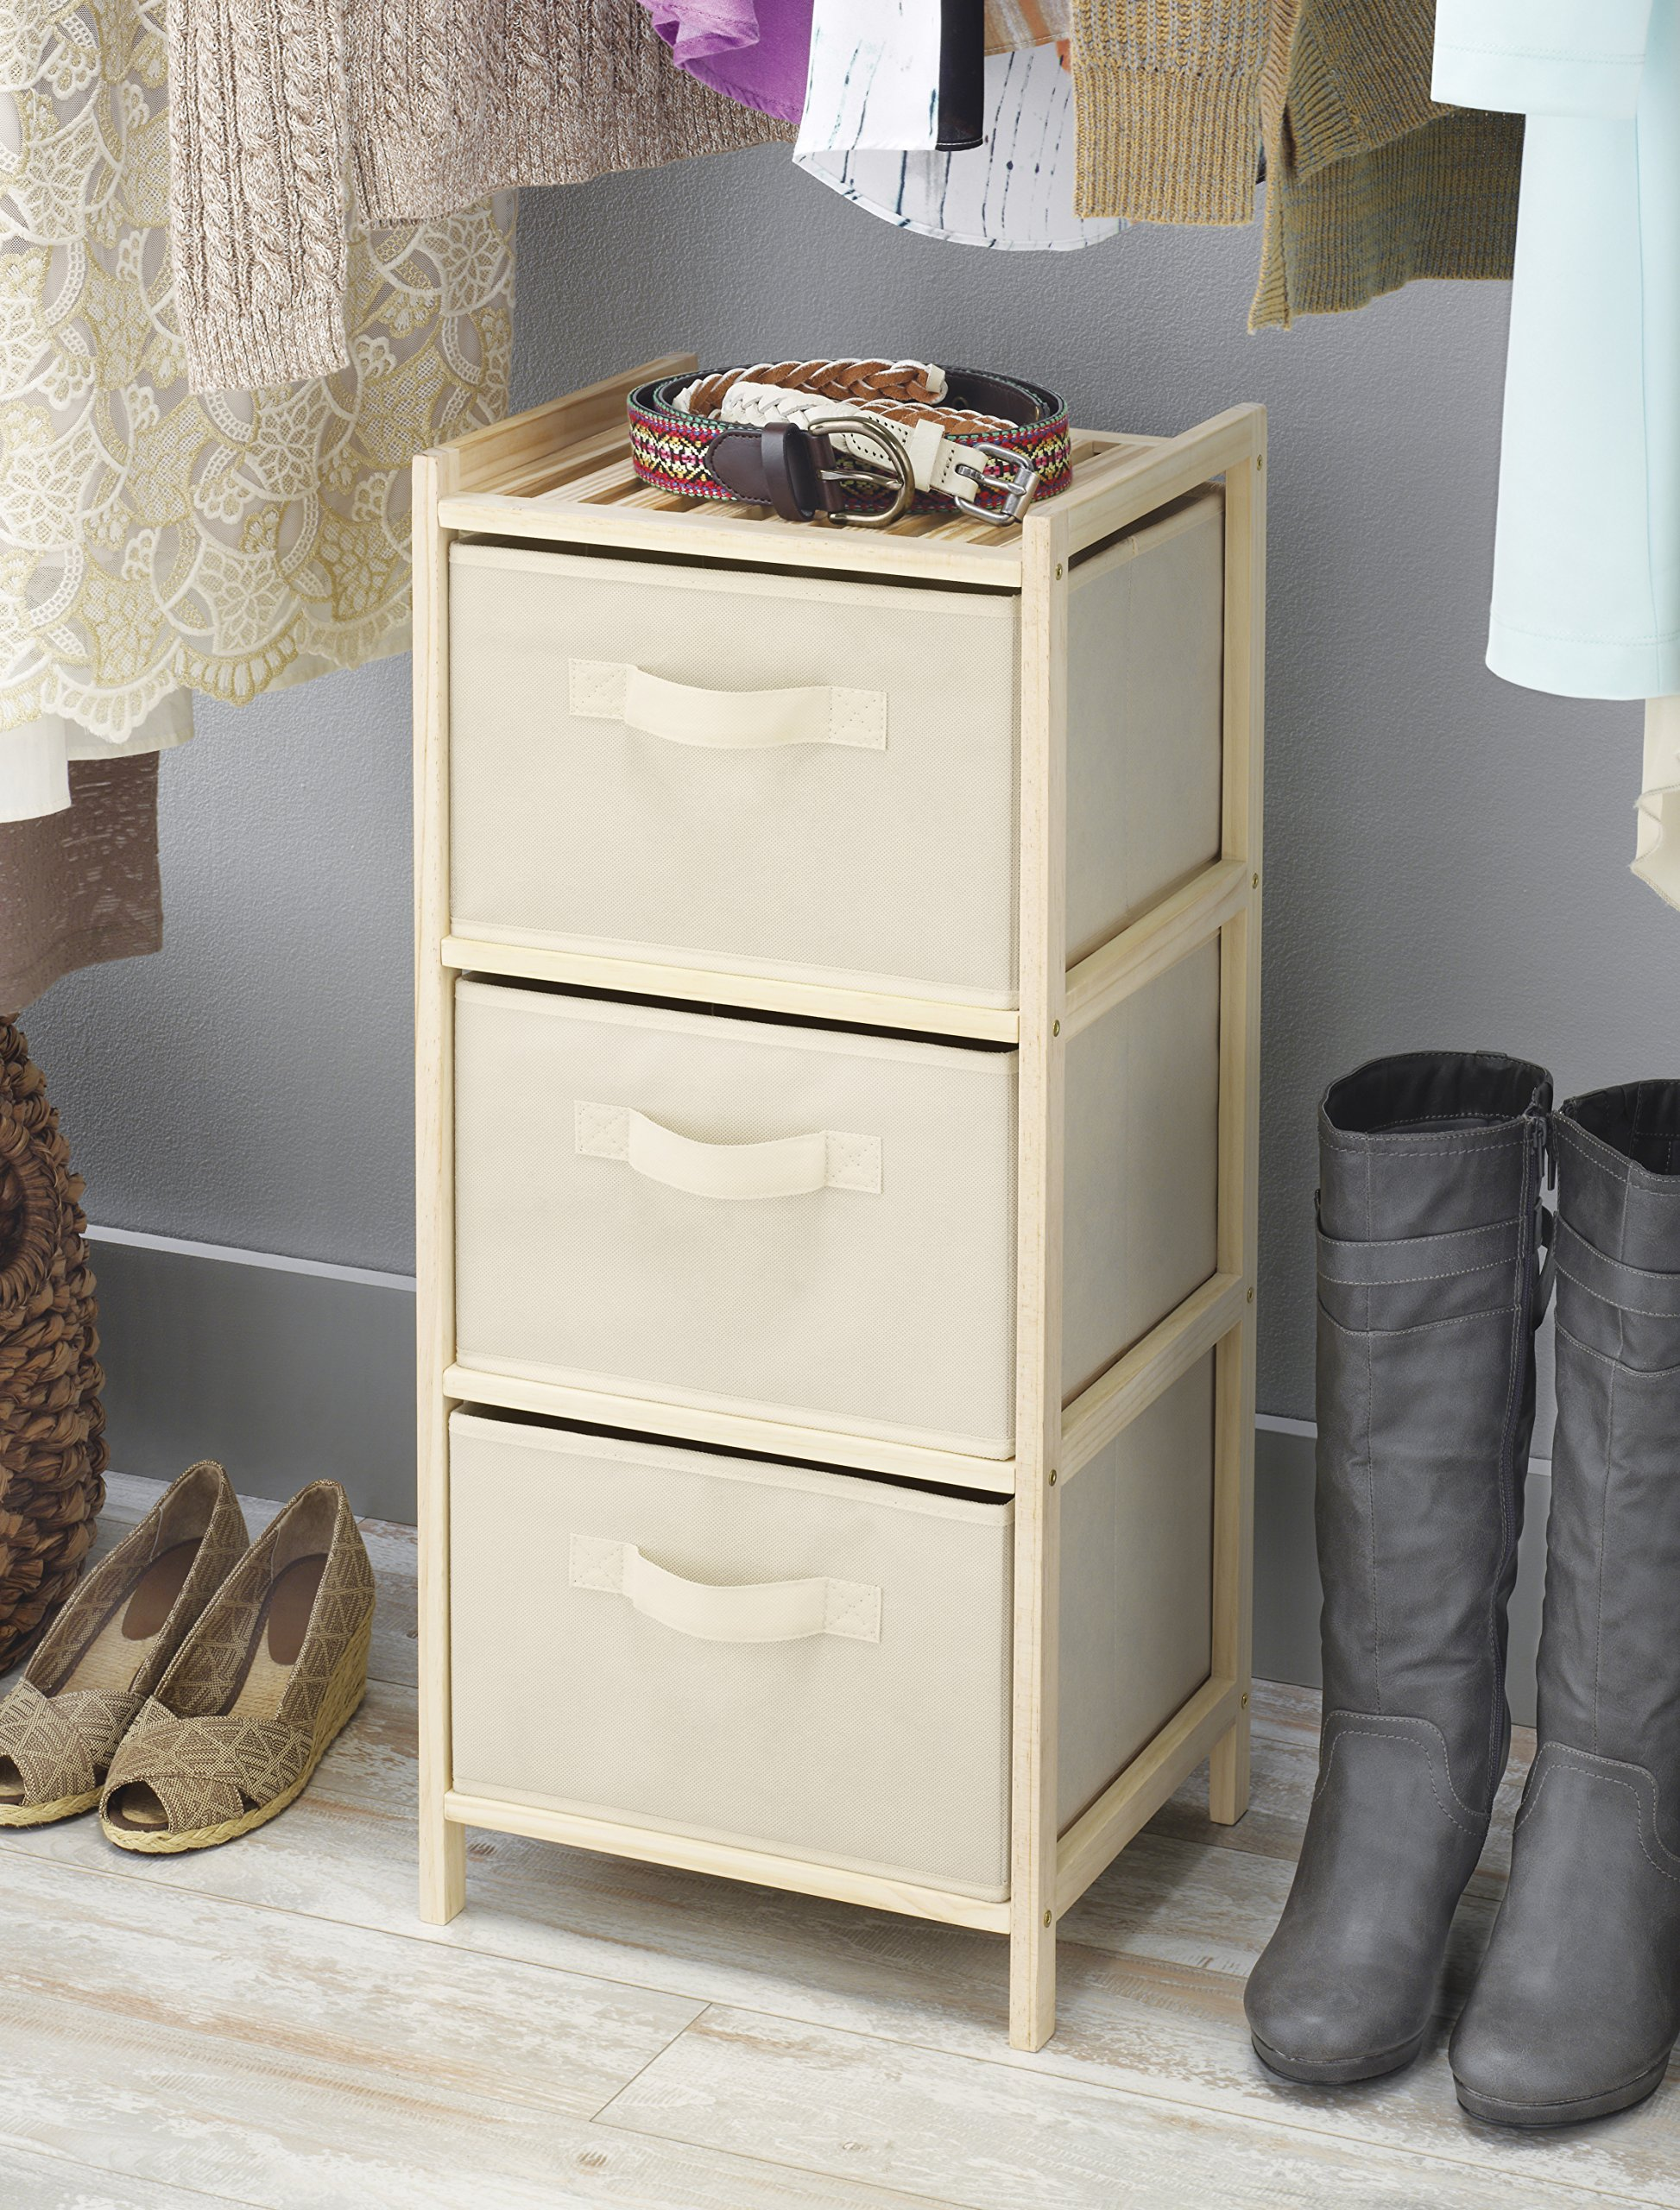 Whitmor 3 Drawer Wood Chest - Compact Design - Pull Out Fabric Bins - Natural Pine by Whitmor (Image #2)